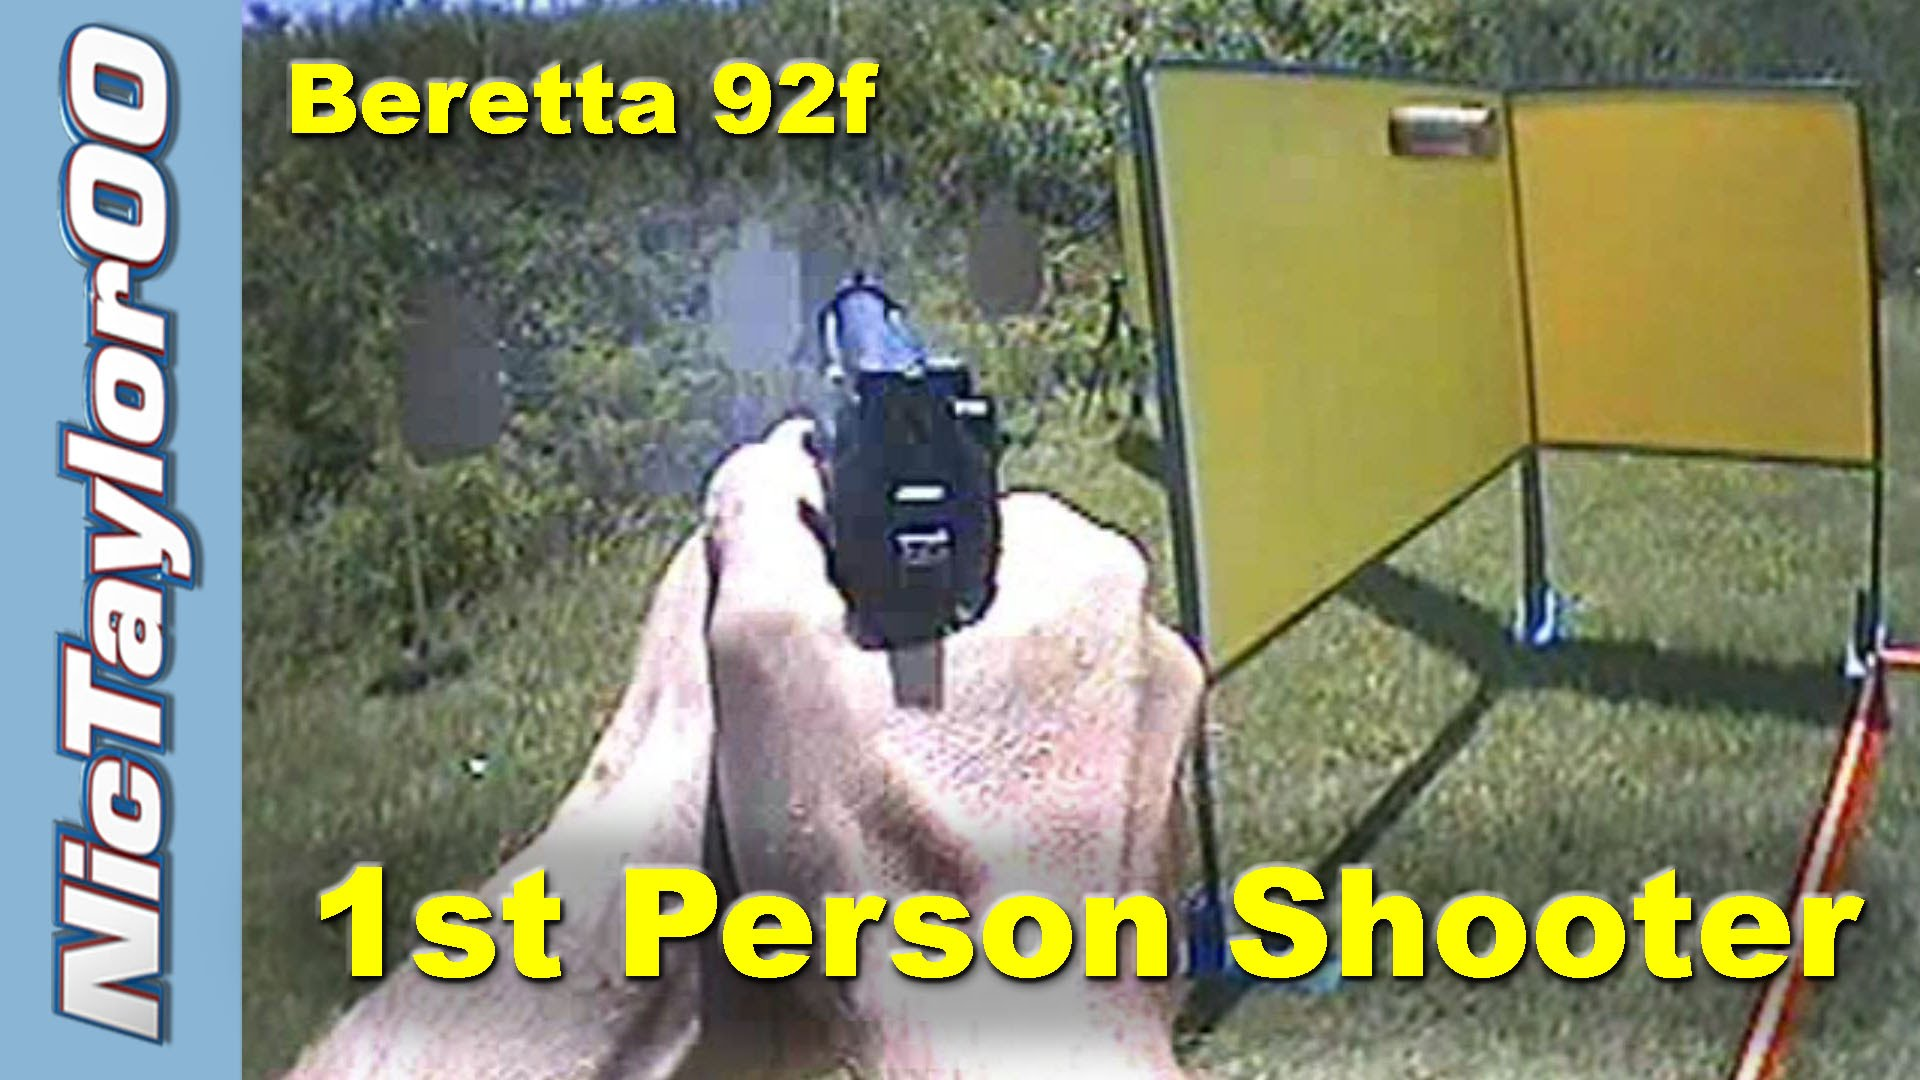 Beretta 92F 9mm in USPSA Production Division